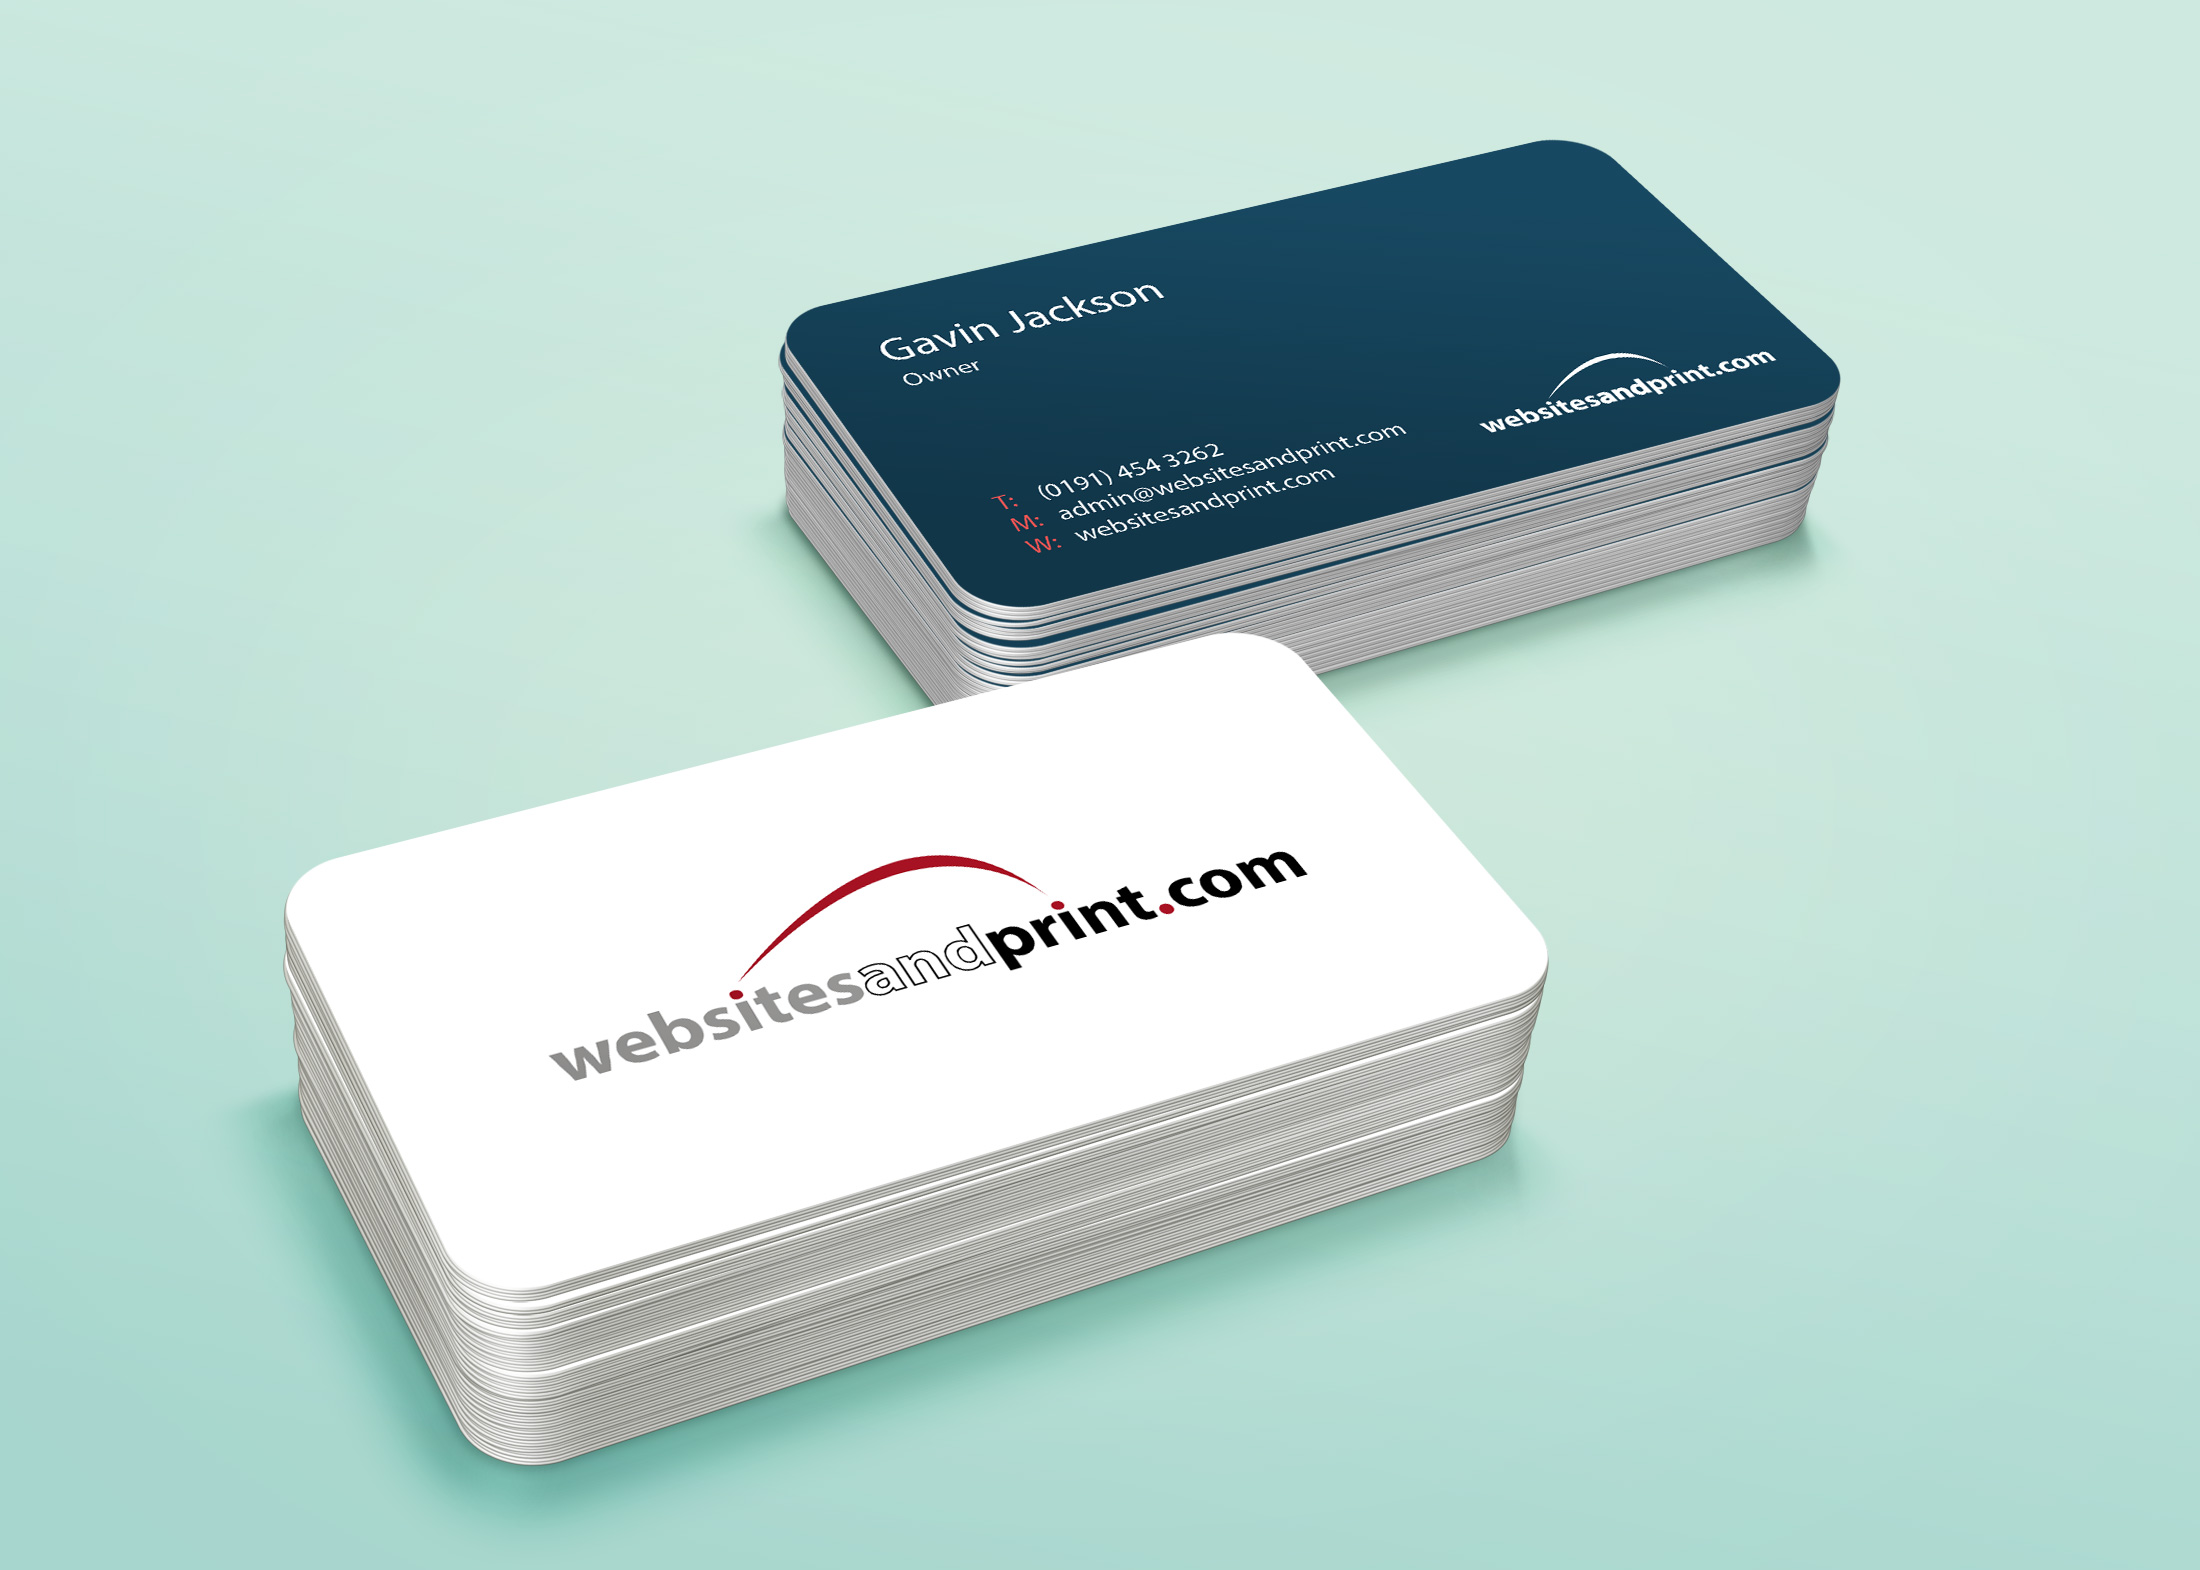 Business Cards - Websites and Print